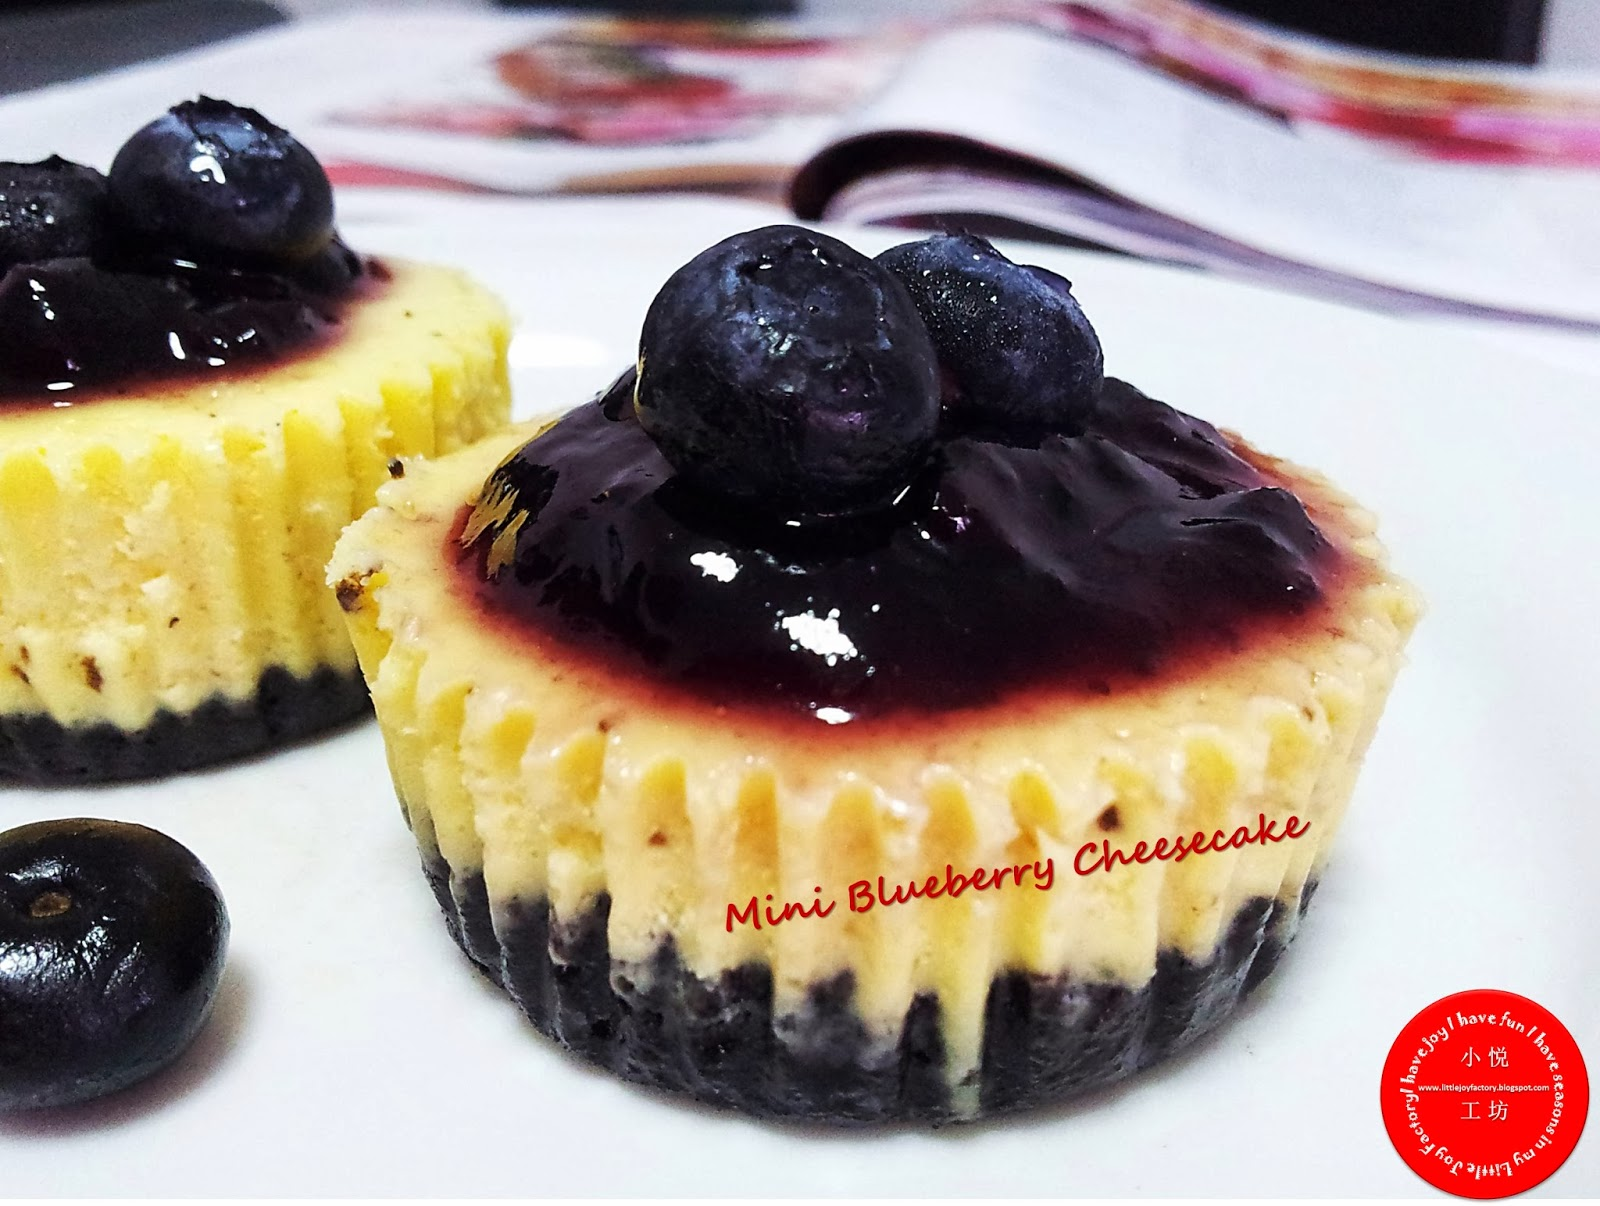 Little Joy Factory: Mini Blueberry Cheesecake